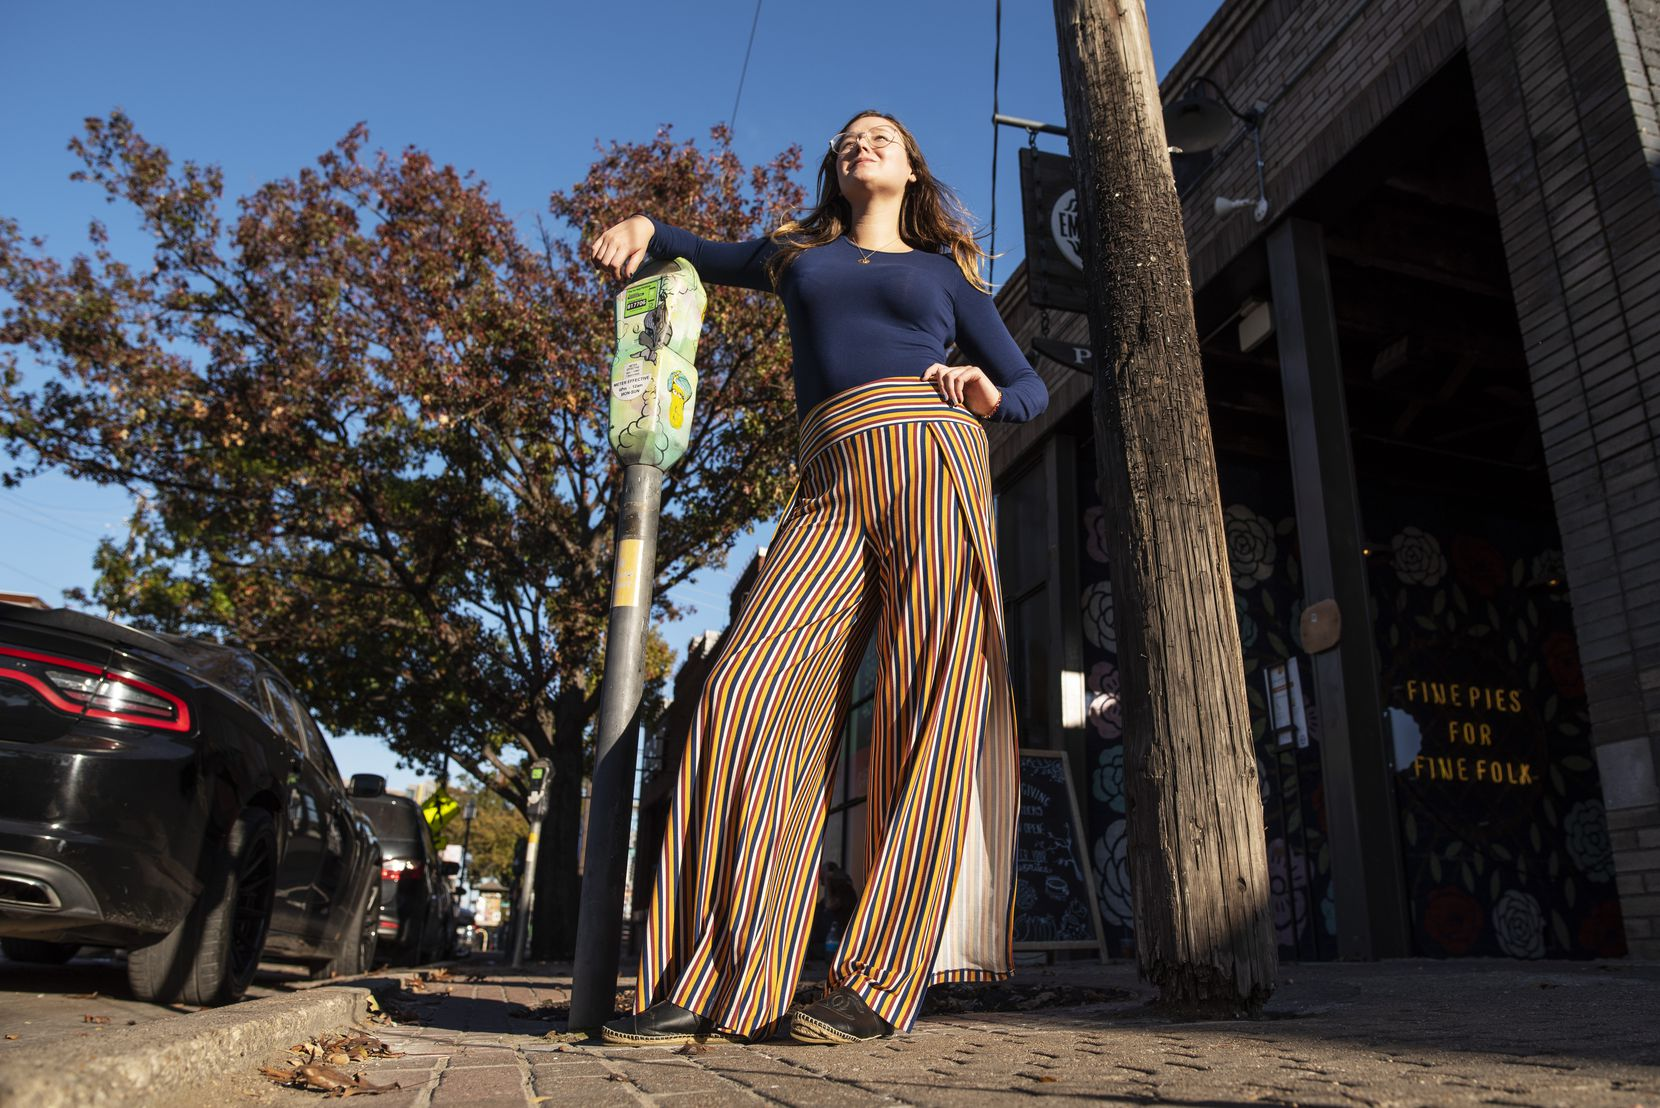 Emmy Hancock, founder of Dallas social impact retail startup Oluna, wears a style of pants called Haley. For each pair of pants sold, a year's supply of menstrual products will be donated to a woman in need.